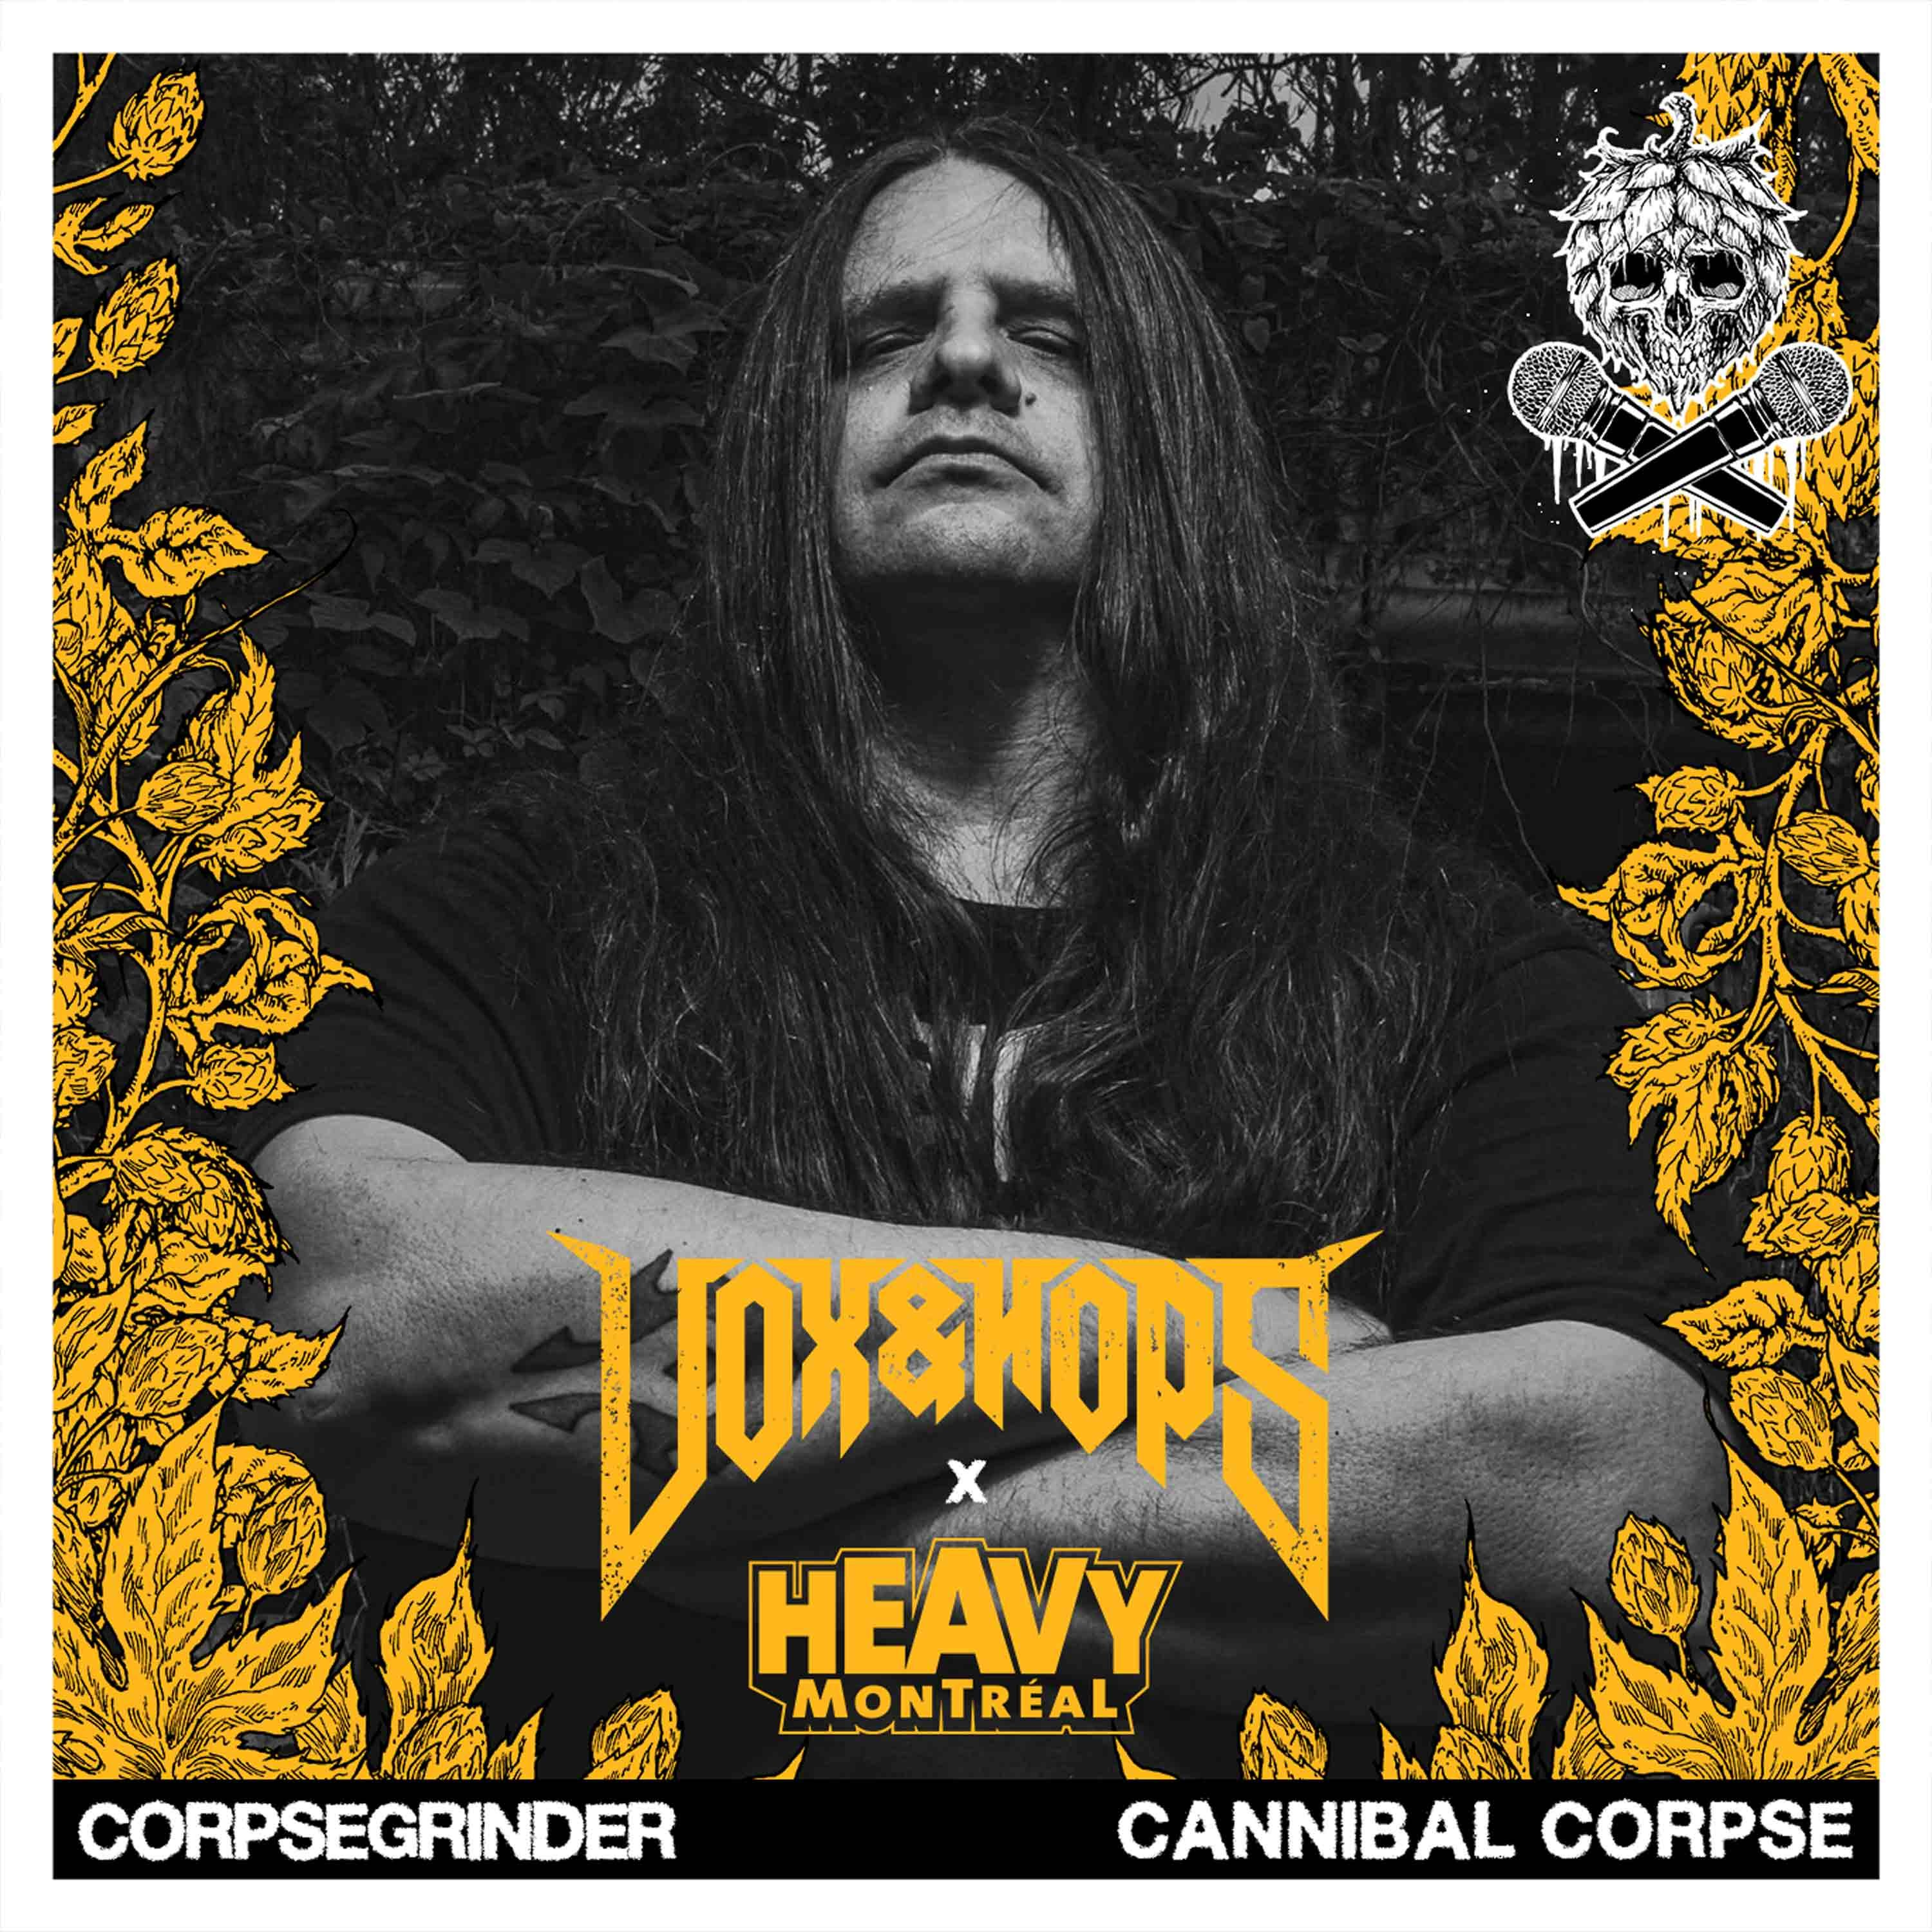 The Fates Put Me Here to Growl & Headbang with George Corpsegrinder Fisher of Cannibal Corpse